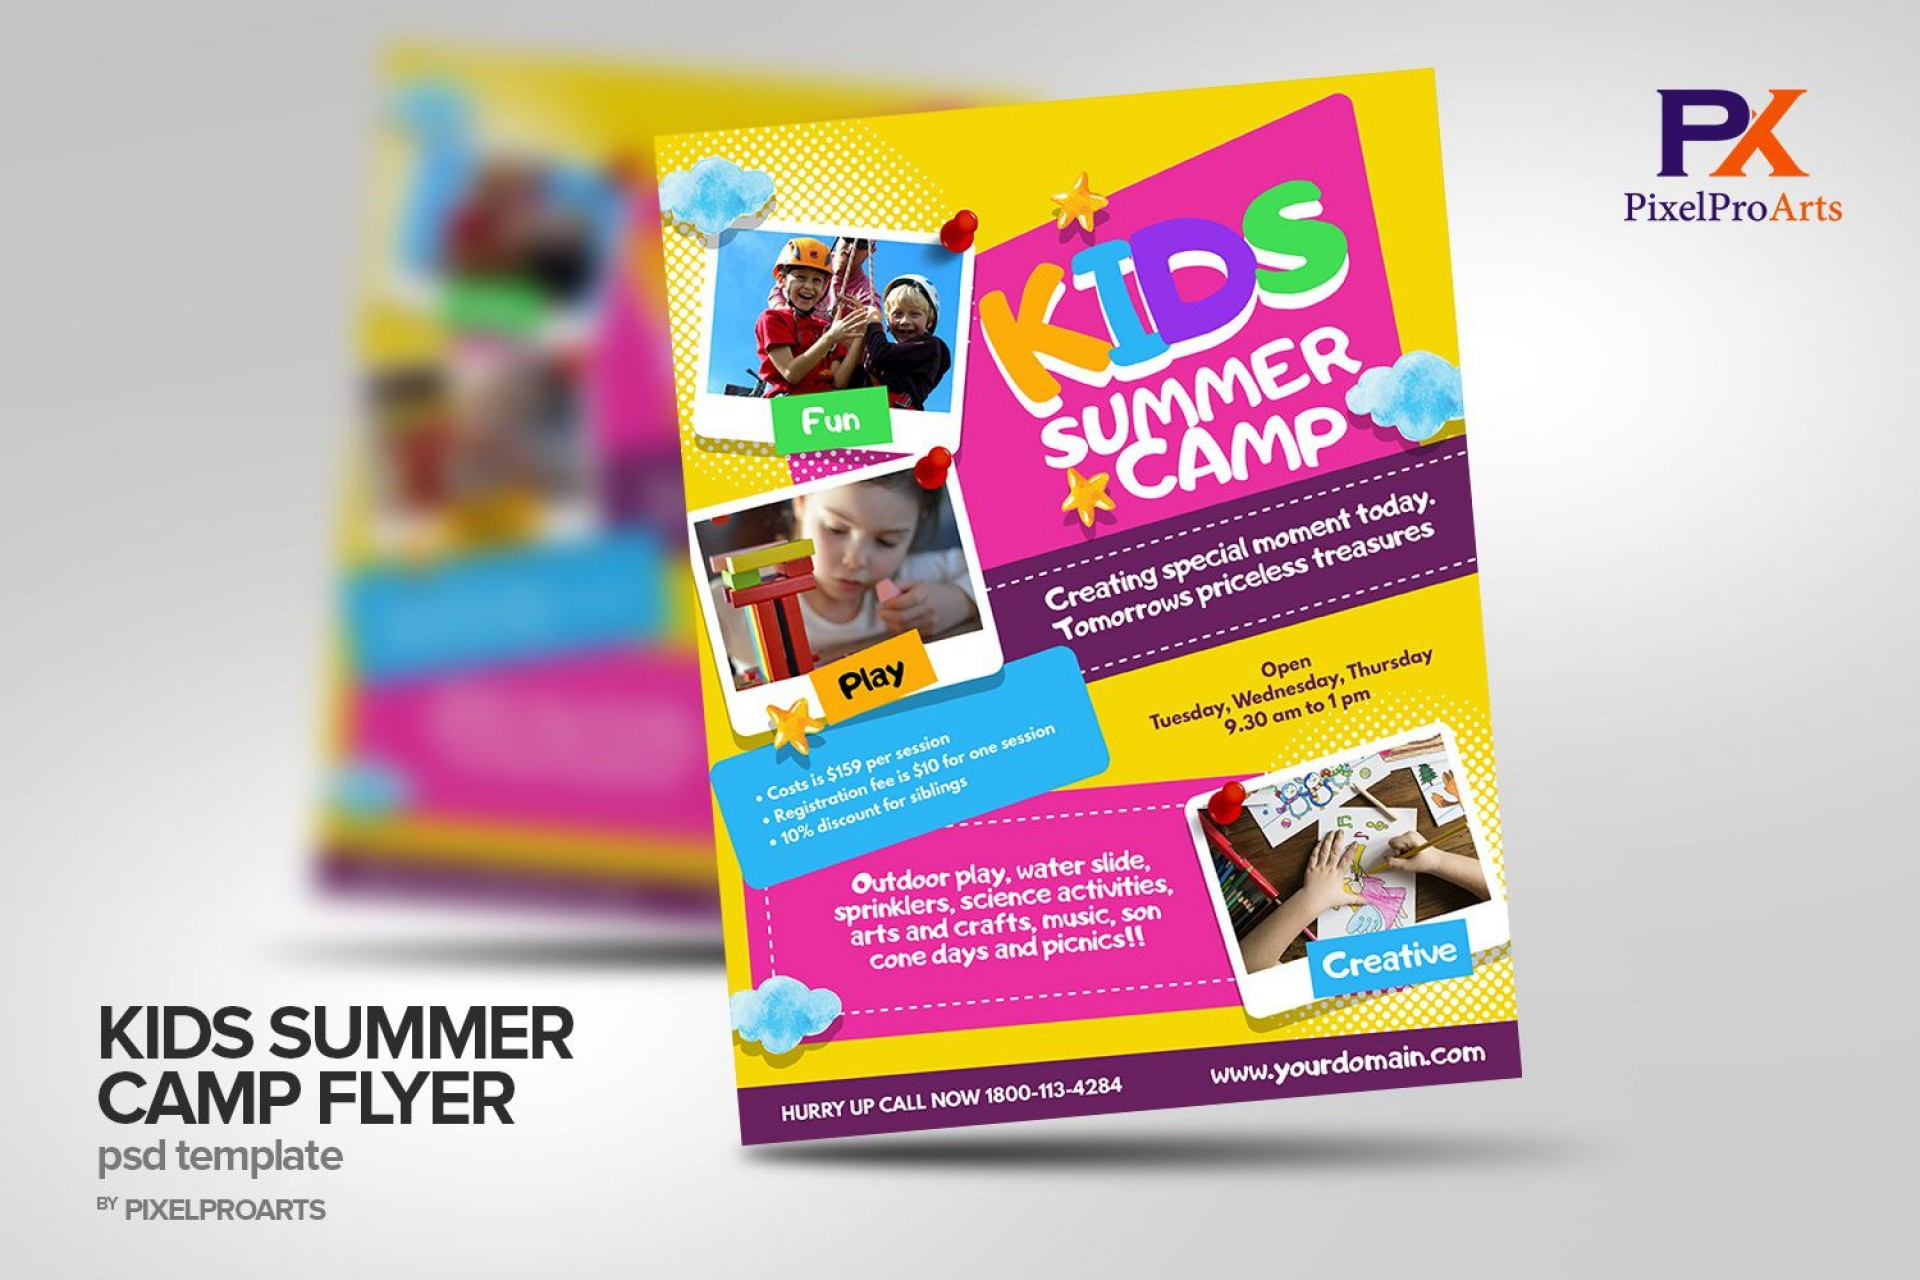 002 Wonderful Summer Camp Flyer Template Image  Day Microsoft Word Background1920